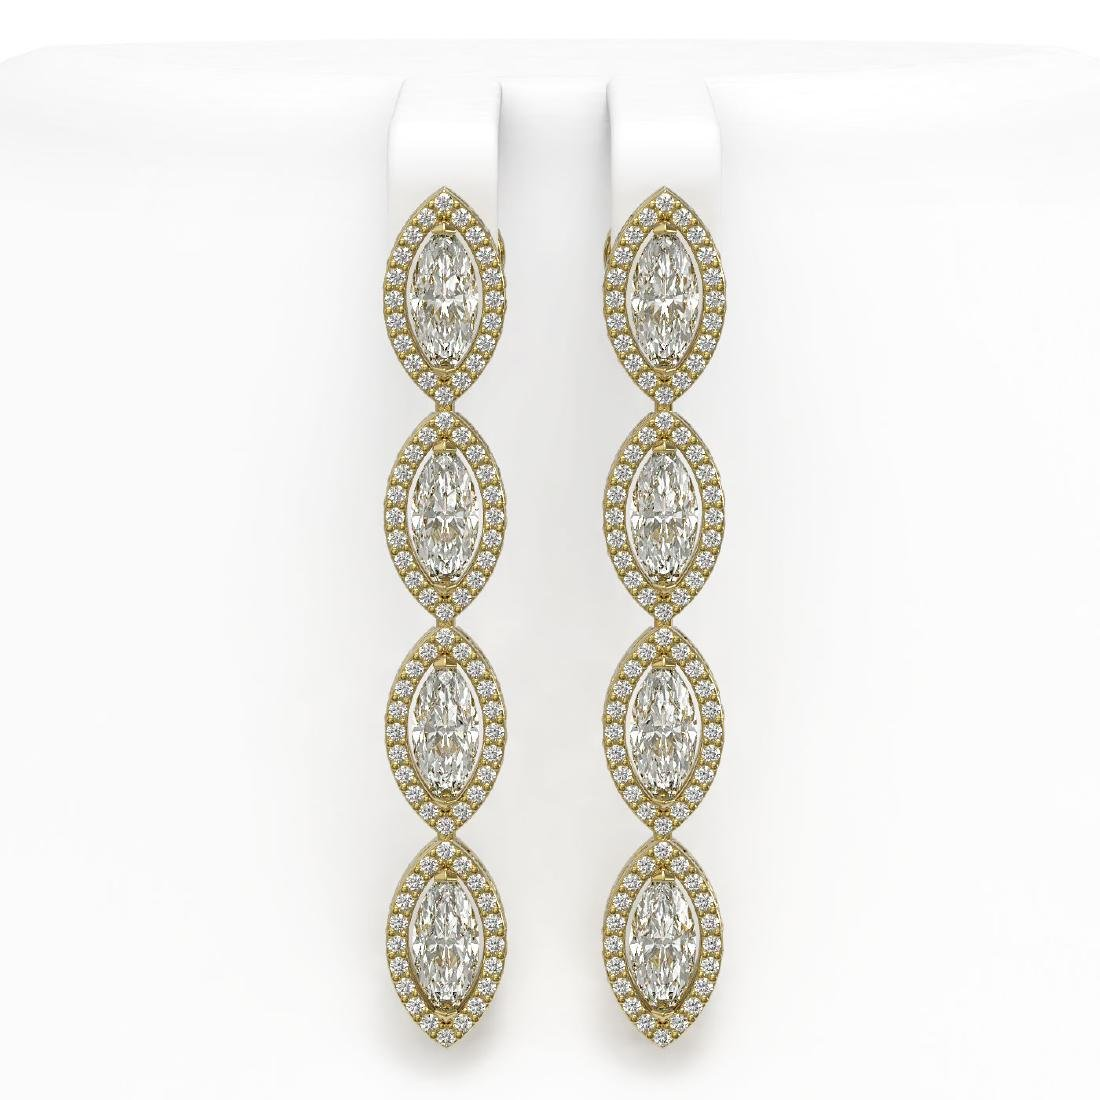 5.33 CTW Marquise Diamond Designer Earrings 18K Yellow